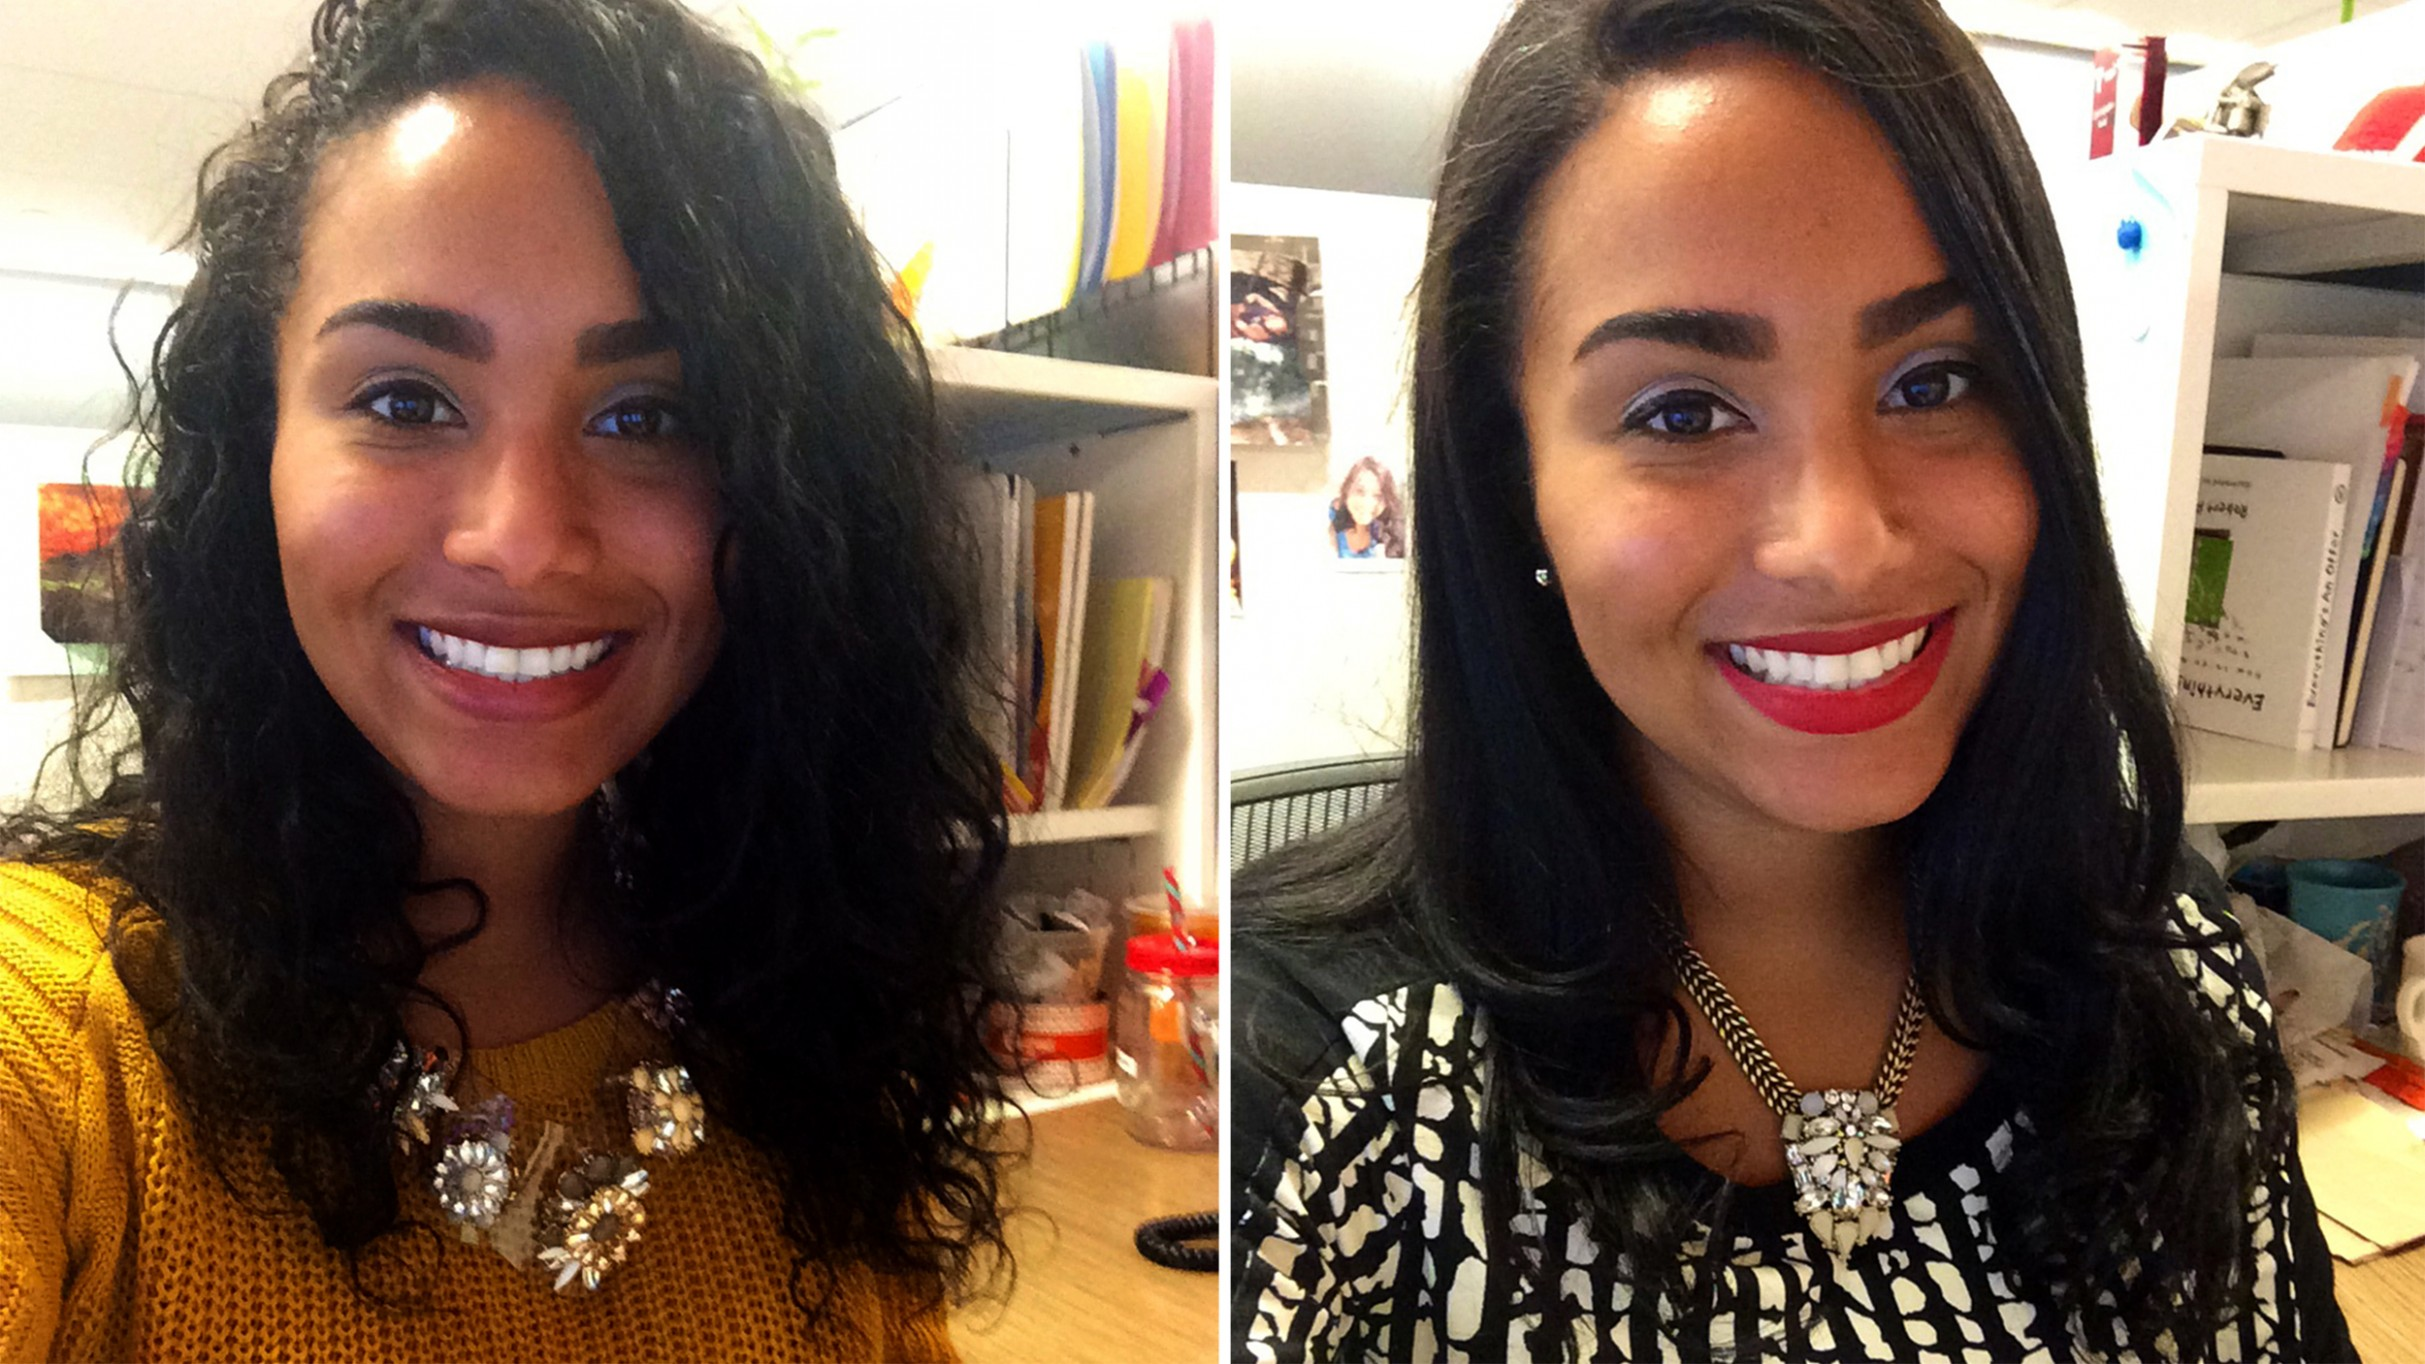 CurlPower: Women Switch From Curly To Straight Hairstyles To Test Interview Hairstyles For Curly Hair